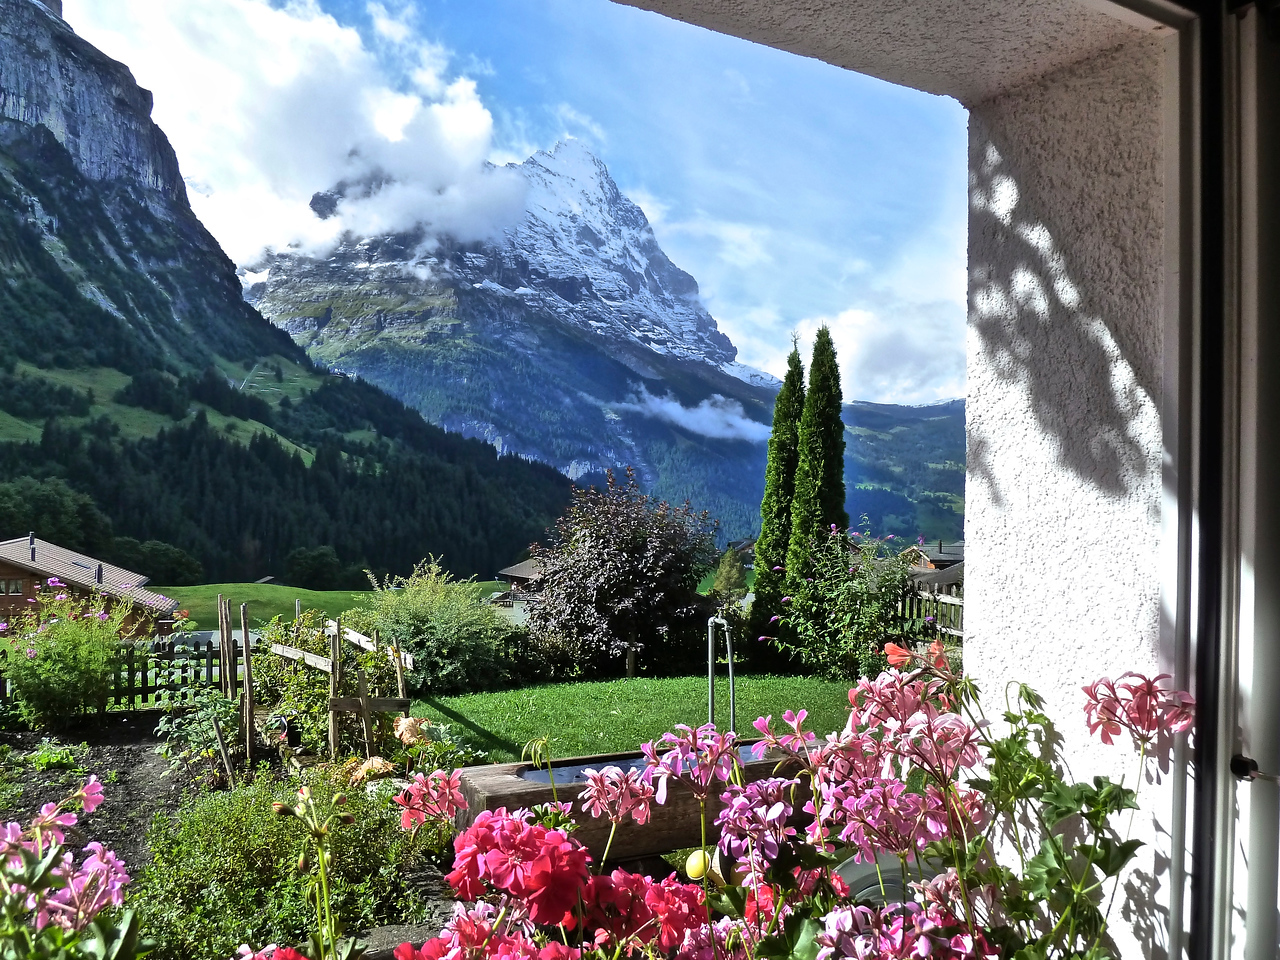 View out our apartment window on to the Eiger with new snow!